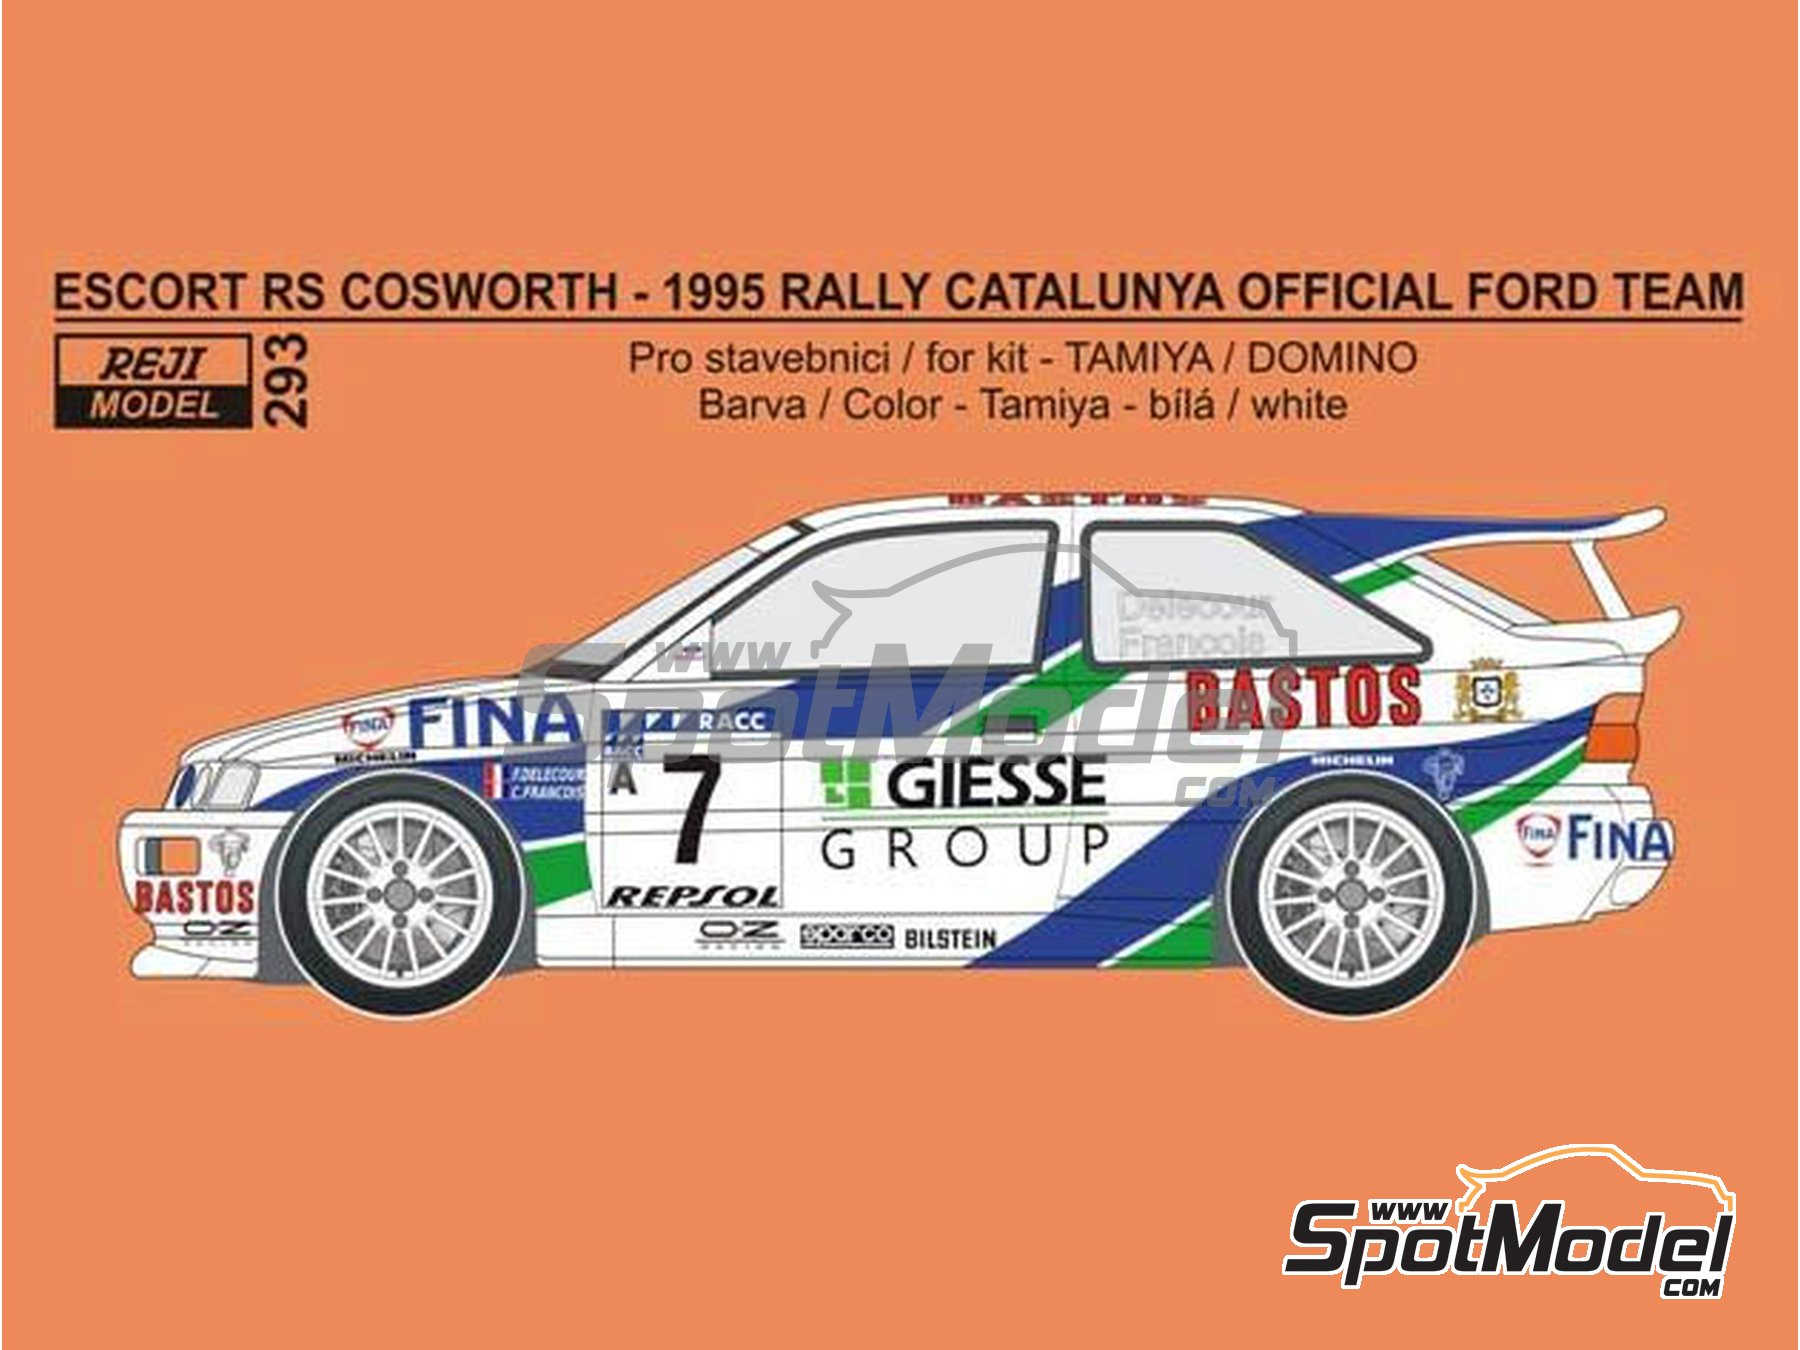 Image 1: Ford Escort RS Cosworth Official Ford Team - Catalunya Costa Dorada RACC Rally 1995 | Marking / livery in 1/24 scale manufactured by Reji Model (ref.REJI-293)